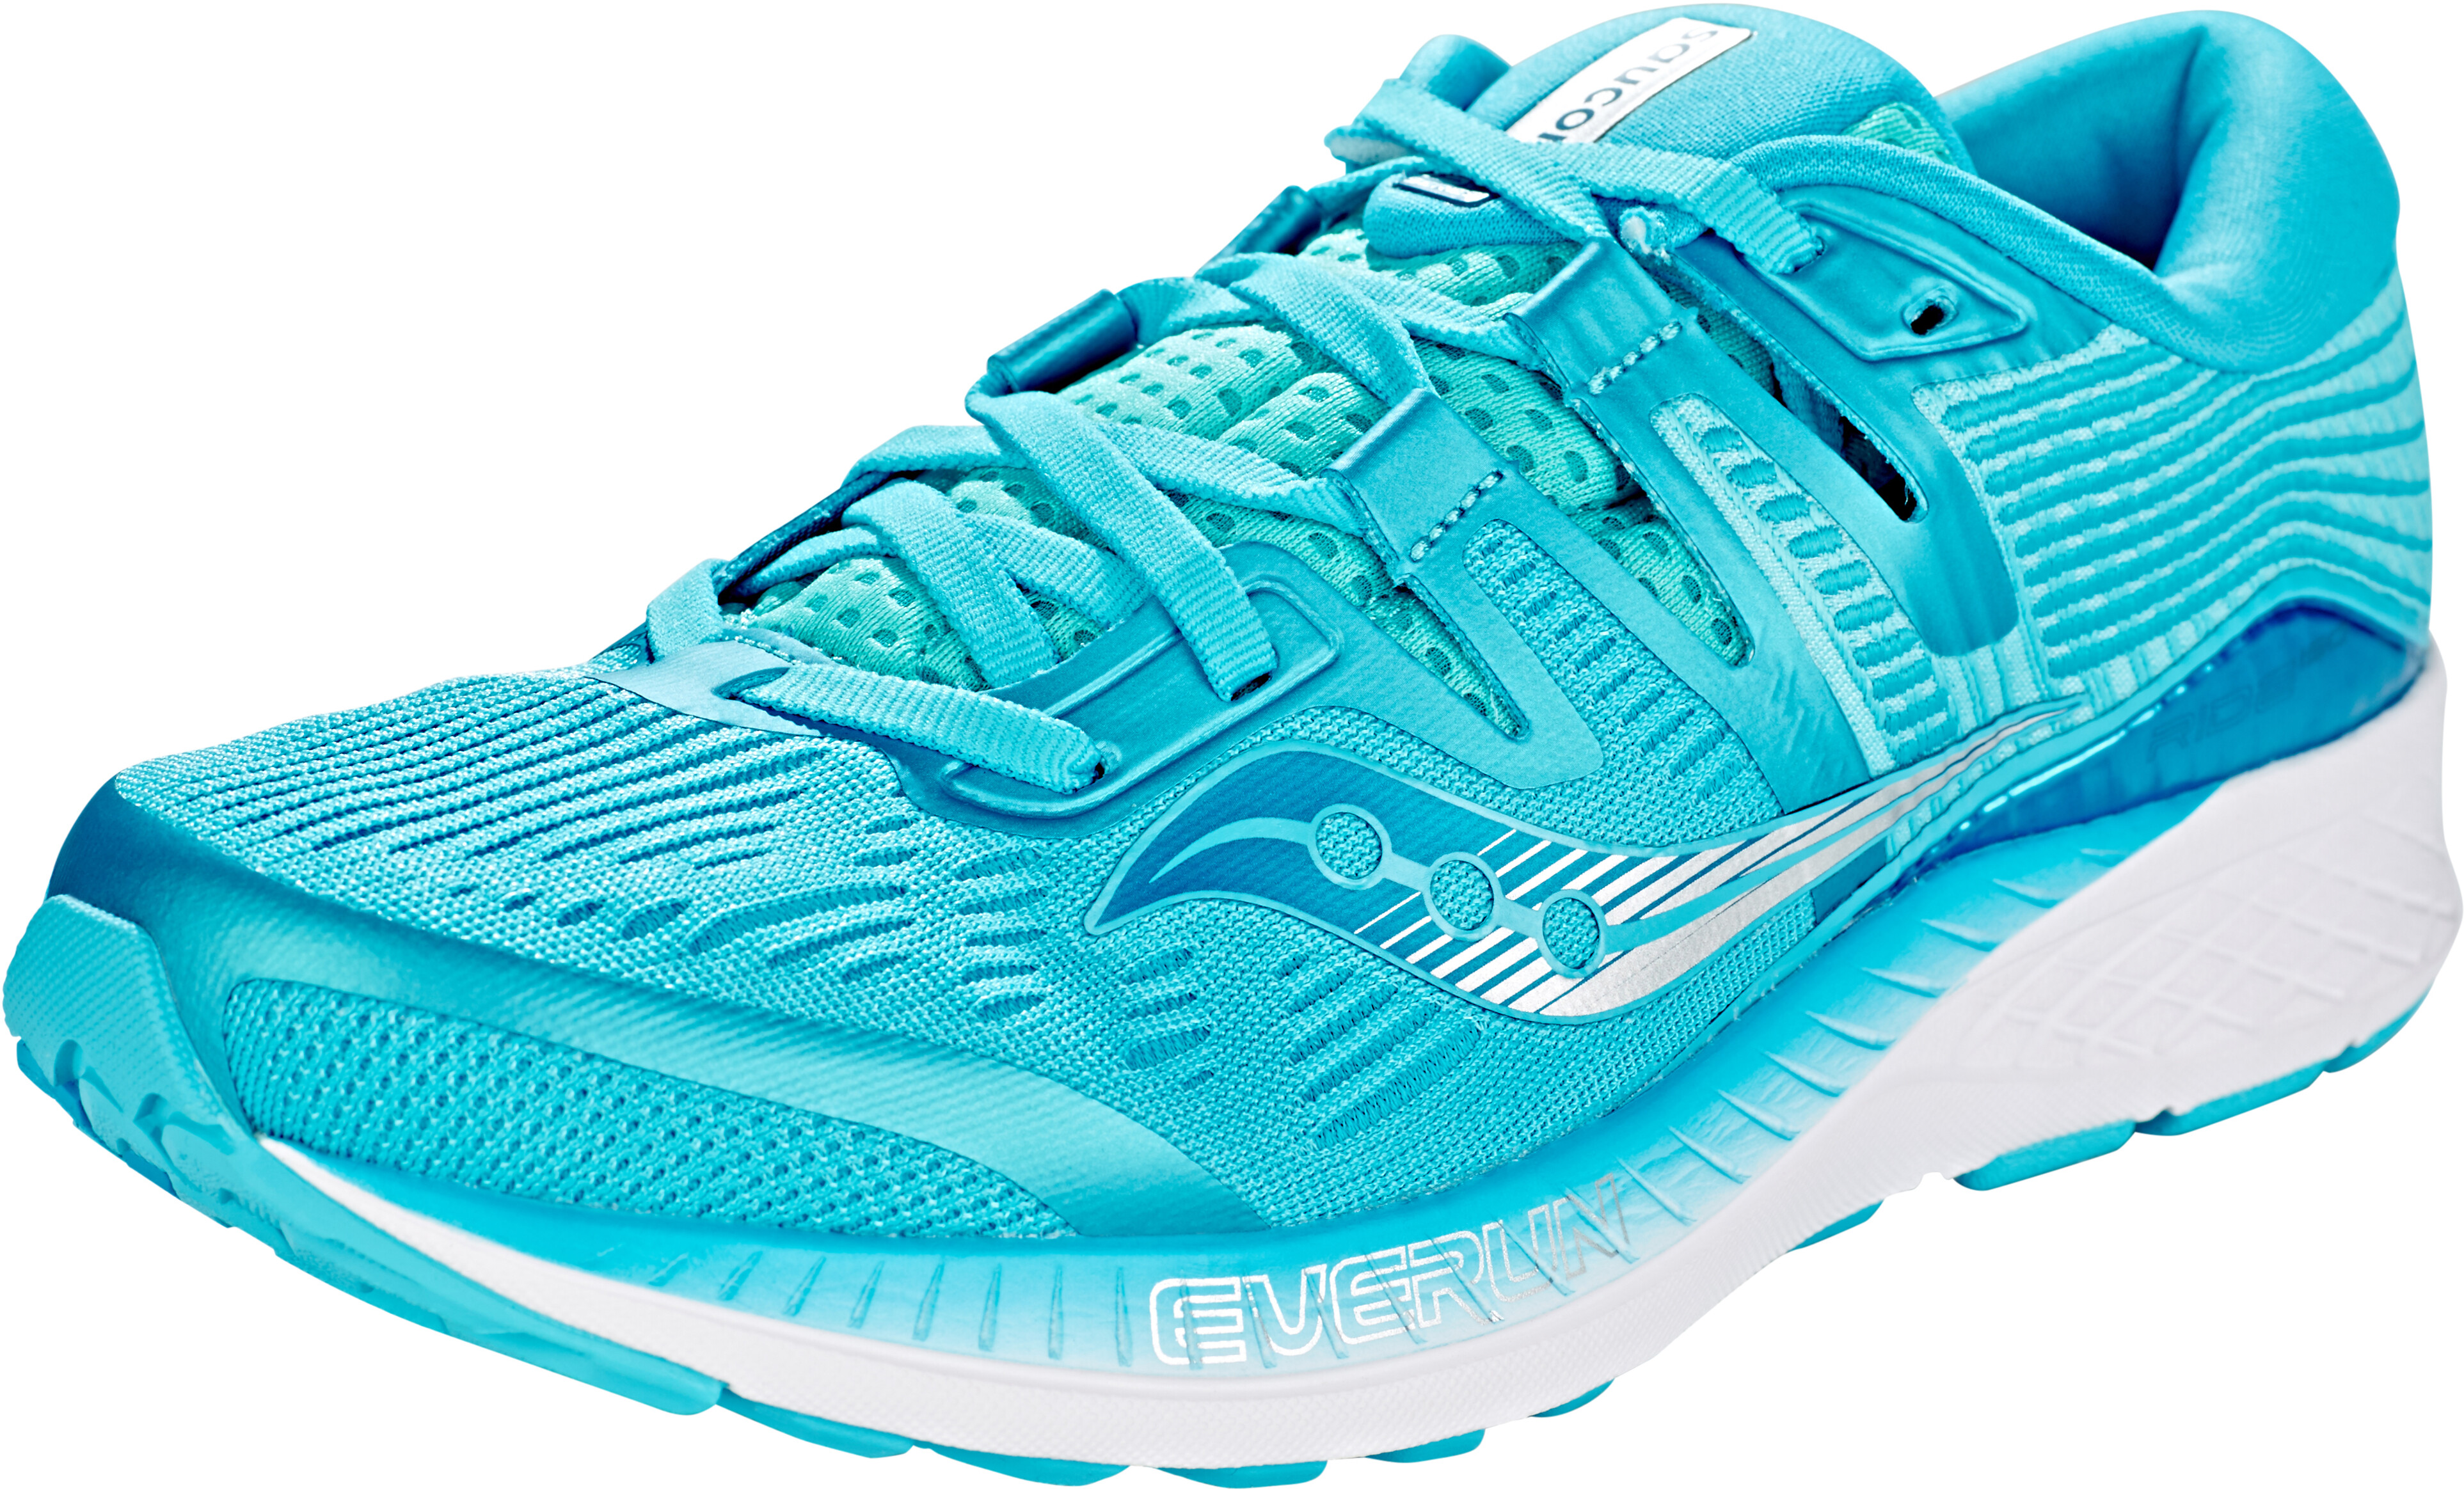 cea06edcfd0 saucony Ride ISO - Chaussures running Femme - turquoise - Boutique ...